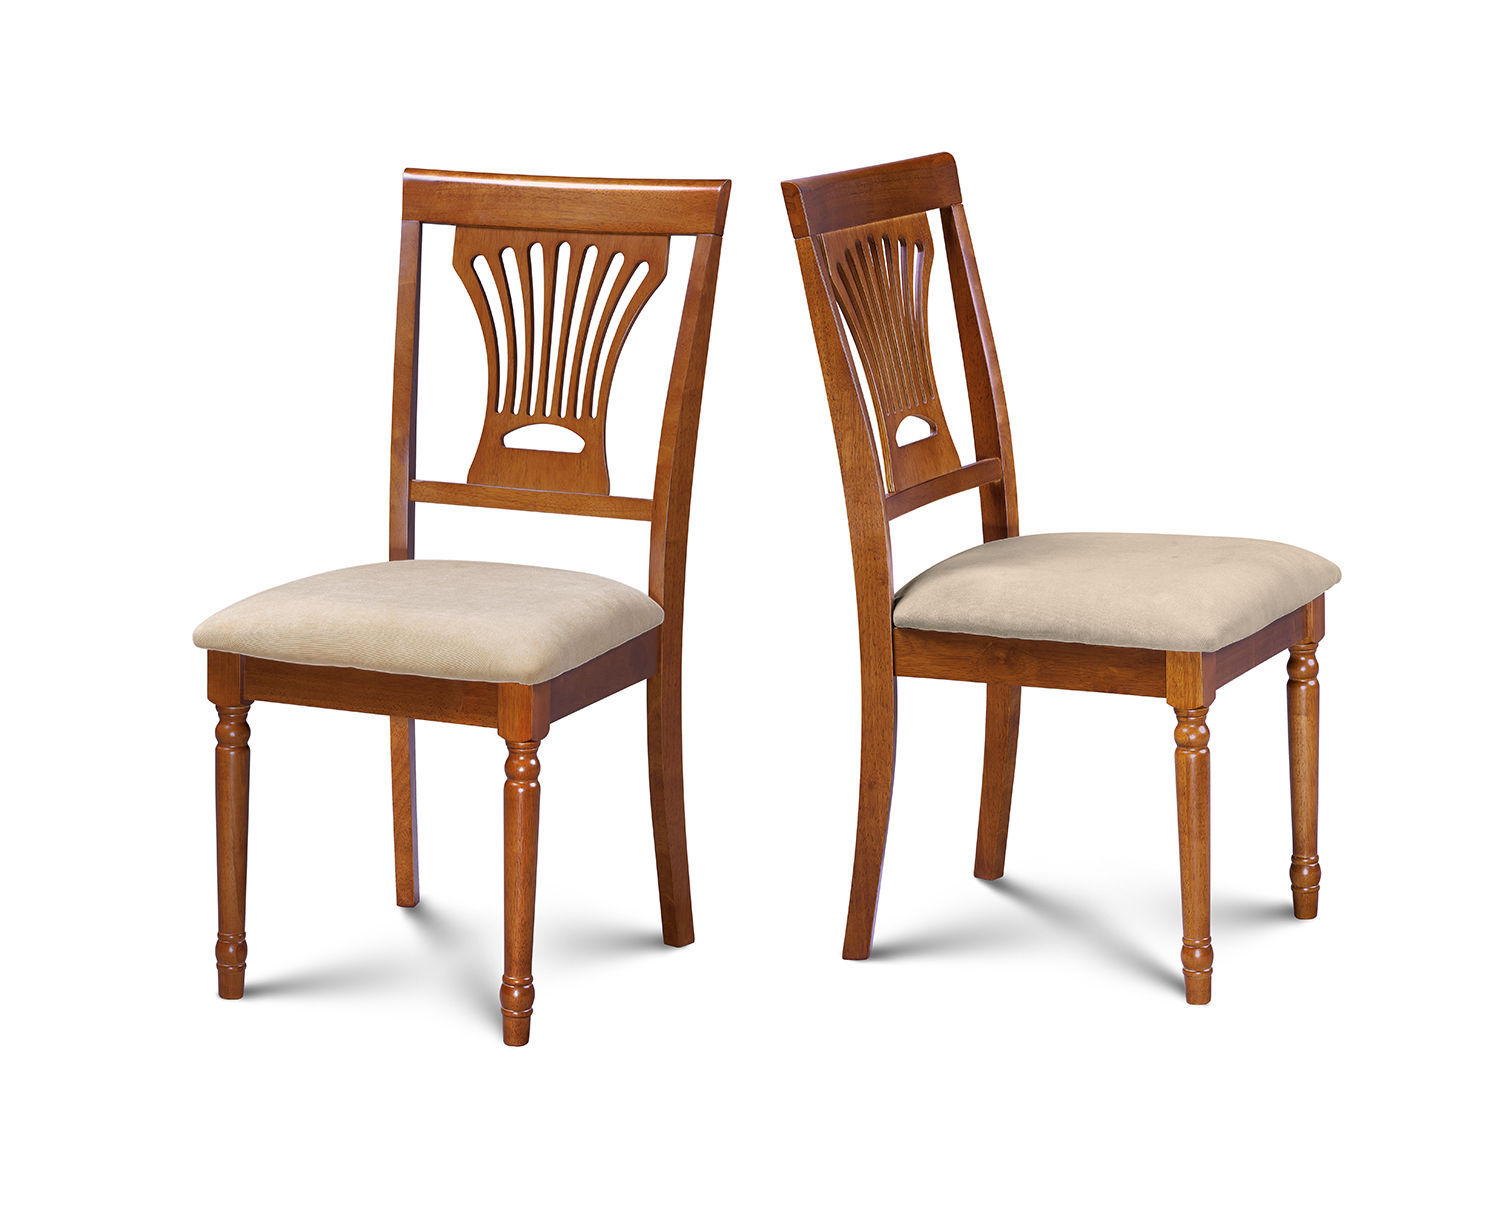 SET OF 4 DINING SIDE CHAIR  WITH SOFT-PADDED SEATS  IN SADDLE  BROWN